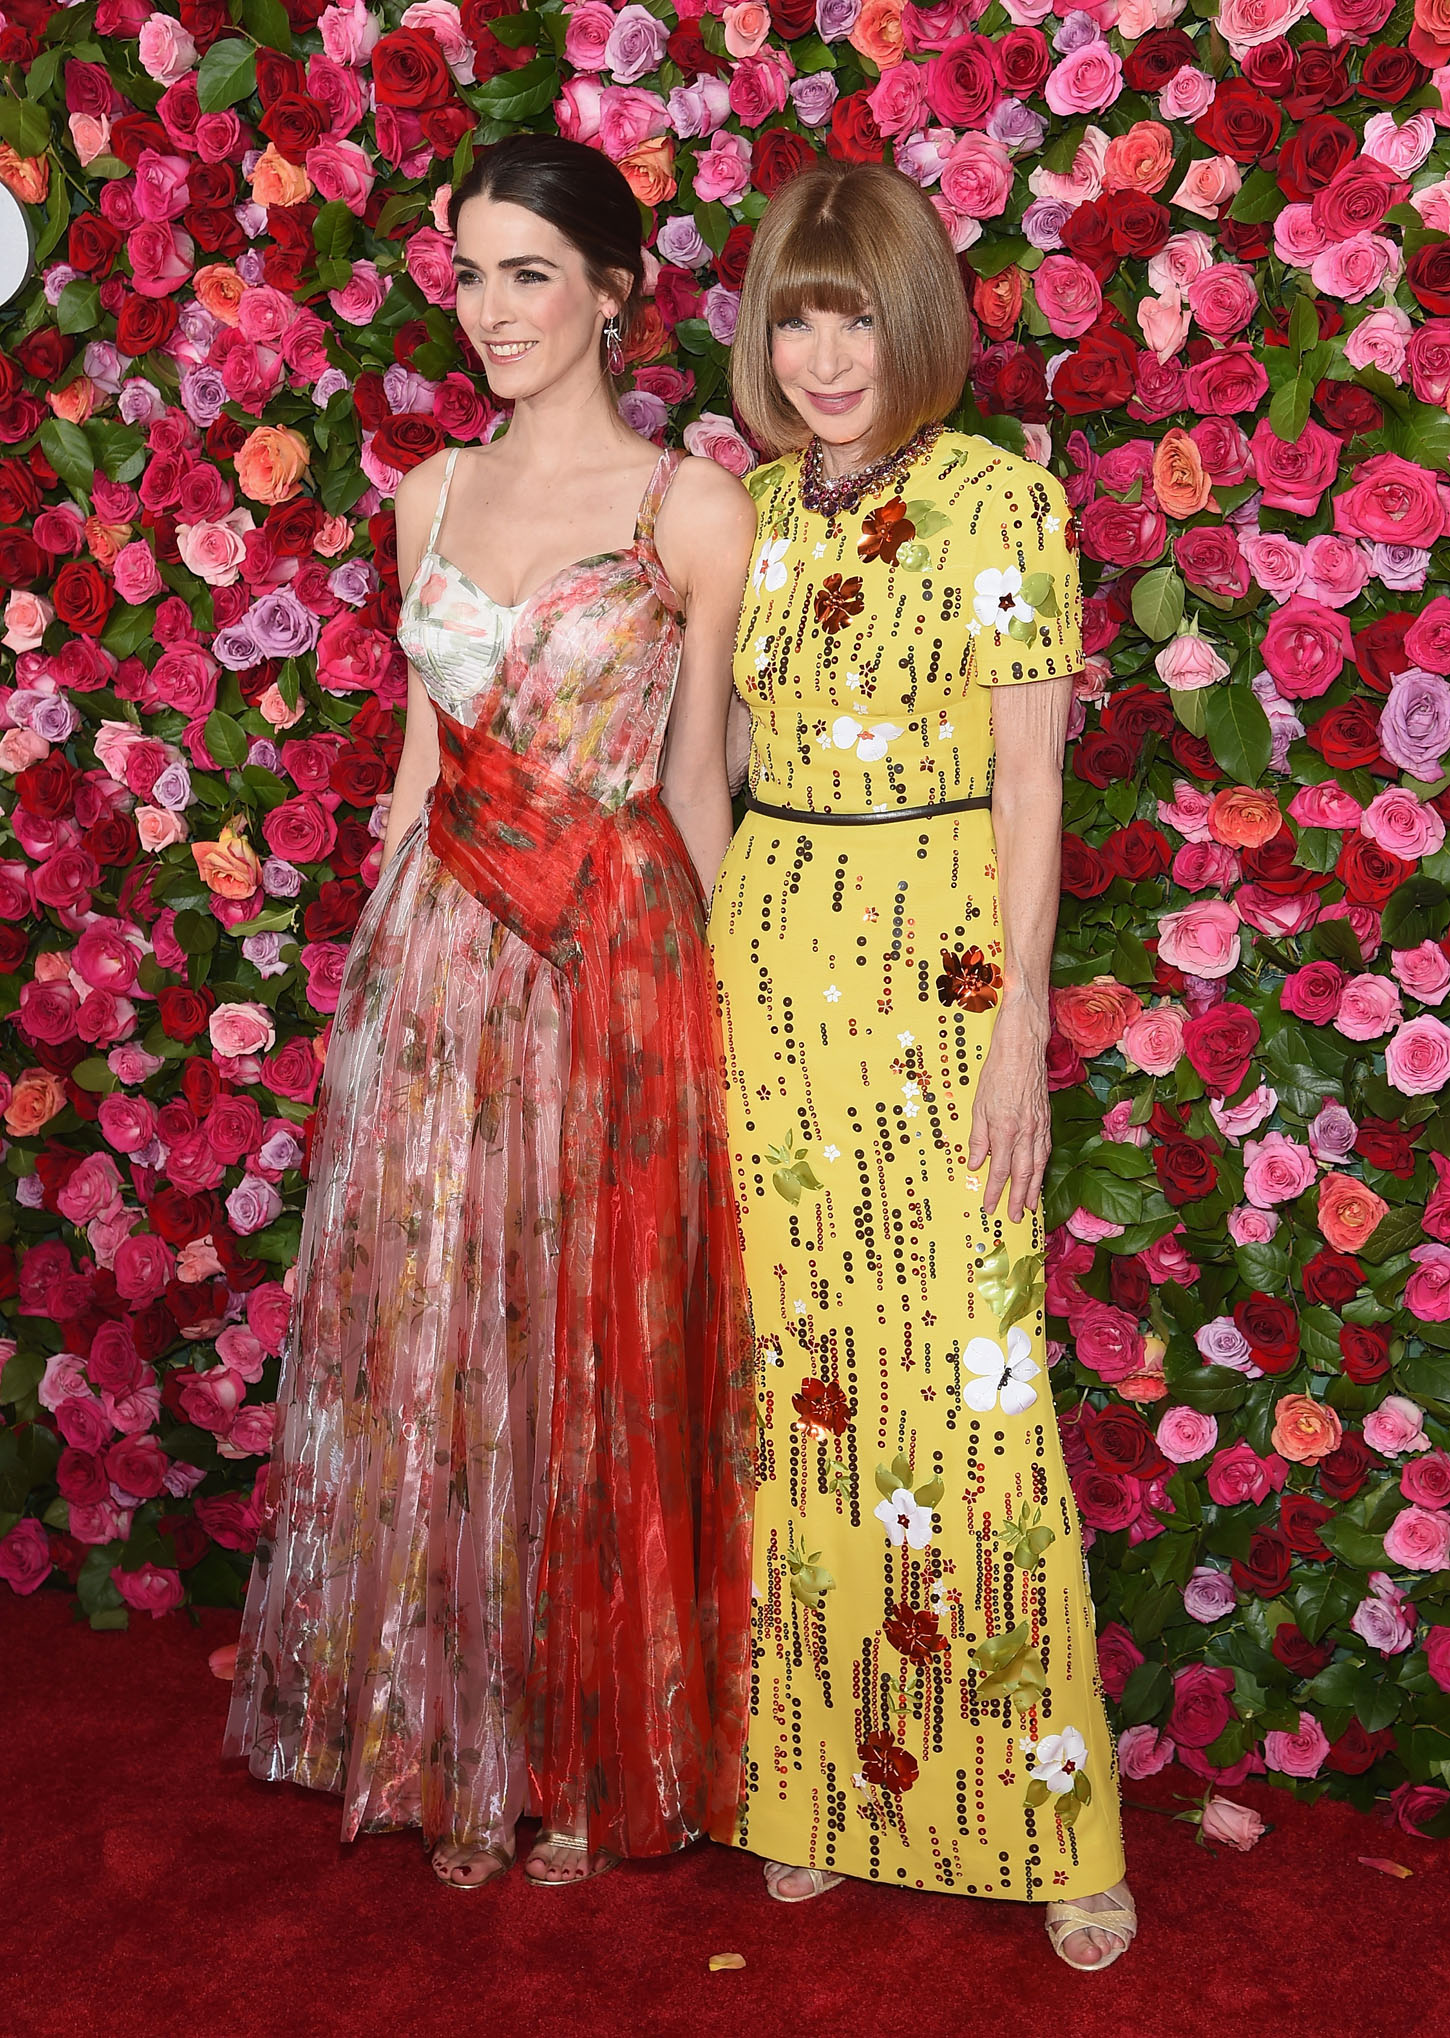 NEW YORK, NY - JUNE 10:  Bee Shaffer and Anna Wintour attend the 72nd Annual Tony Awards at Radio City Music Hall on June 10, 2018 in New York City.  (Photo by Jamie McCarthy/Getty Images)